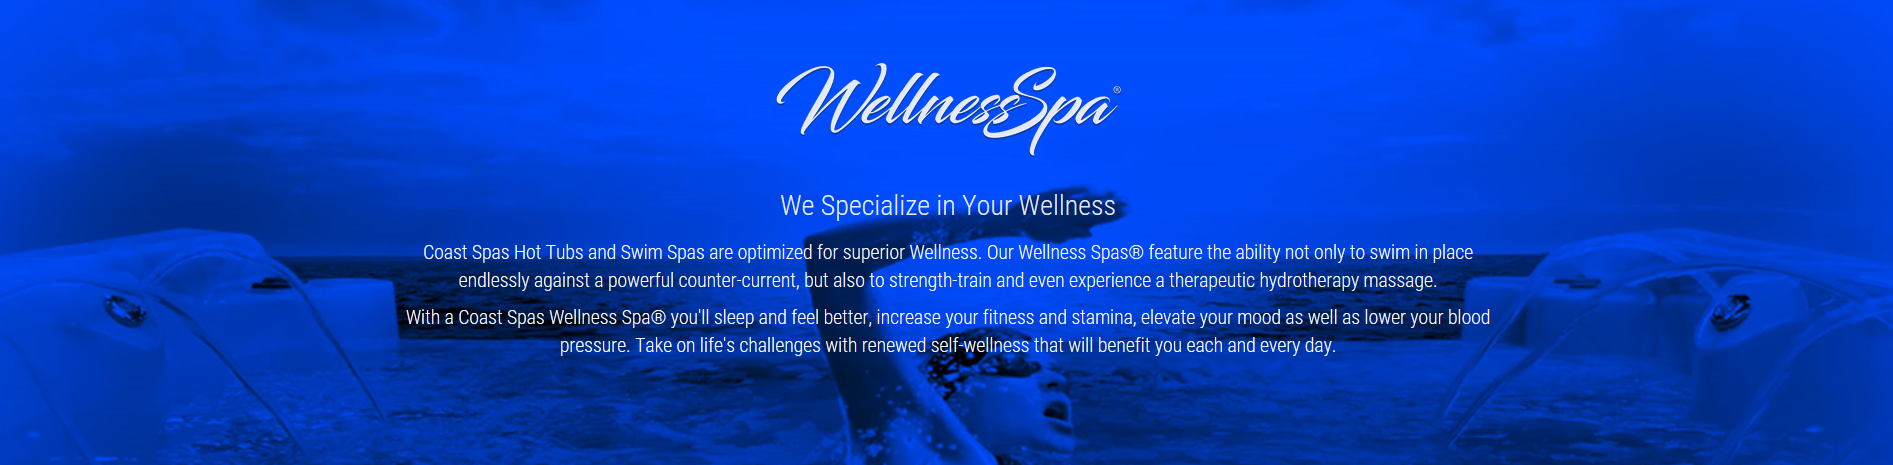 specialize in wellness.png